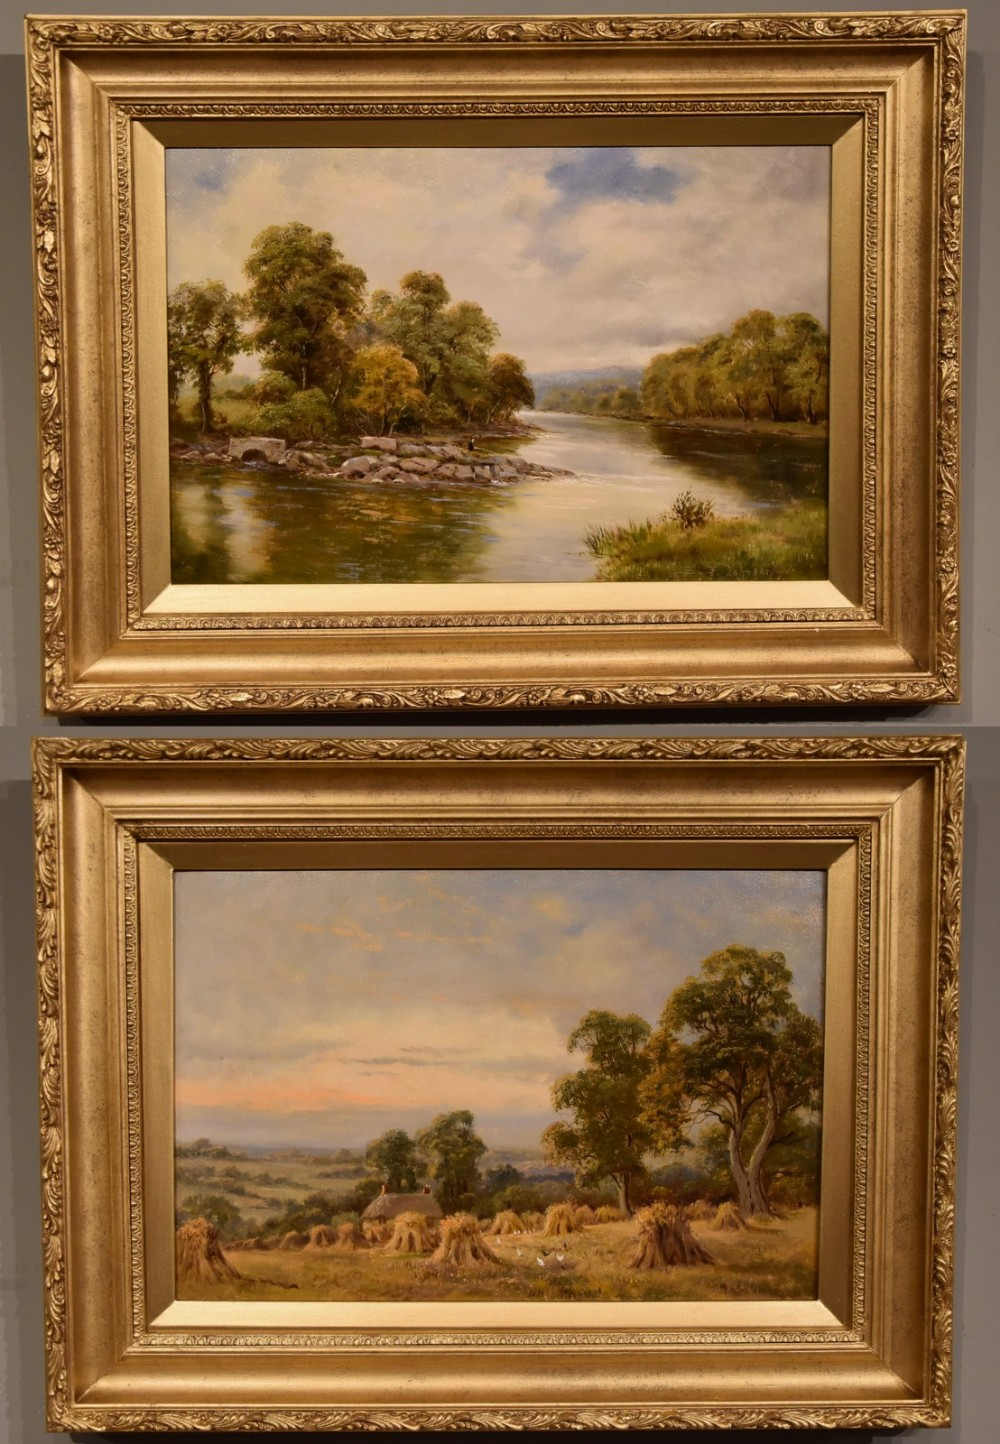 oil painting pair by sidney yates johnson on the river conway north wales and harvesting